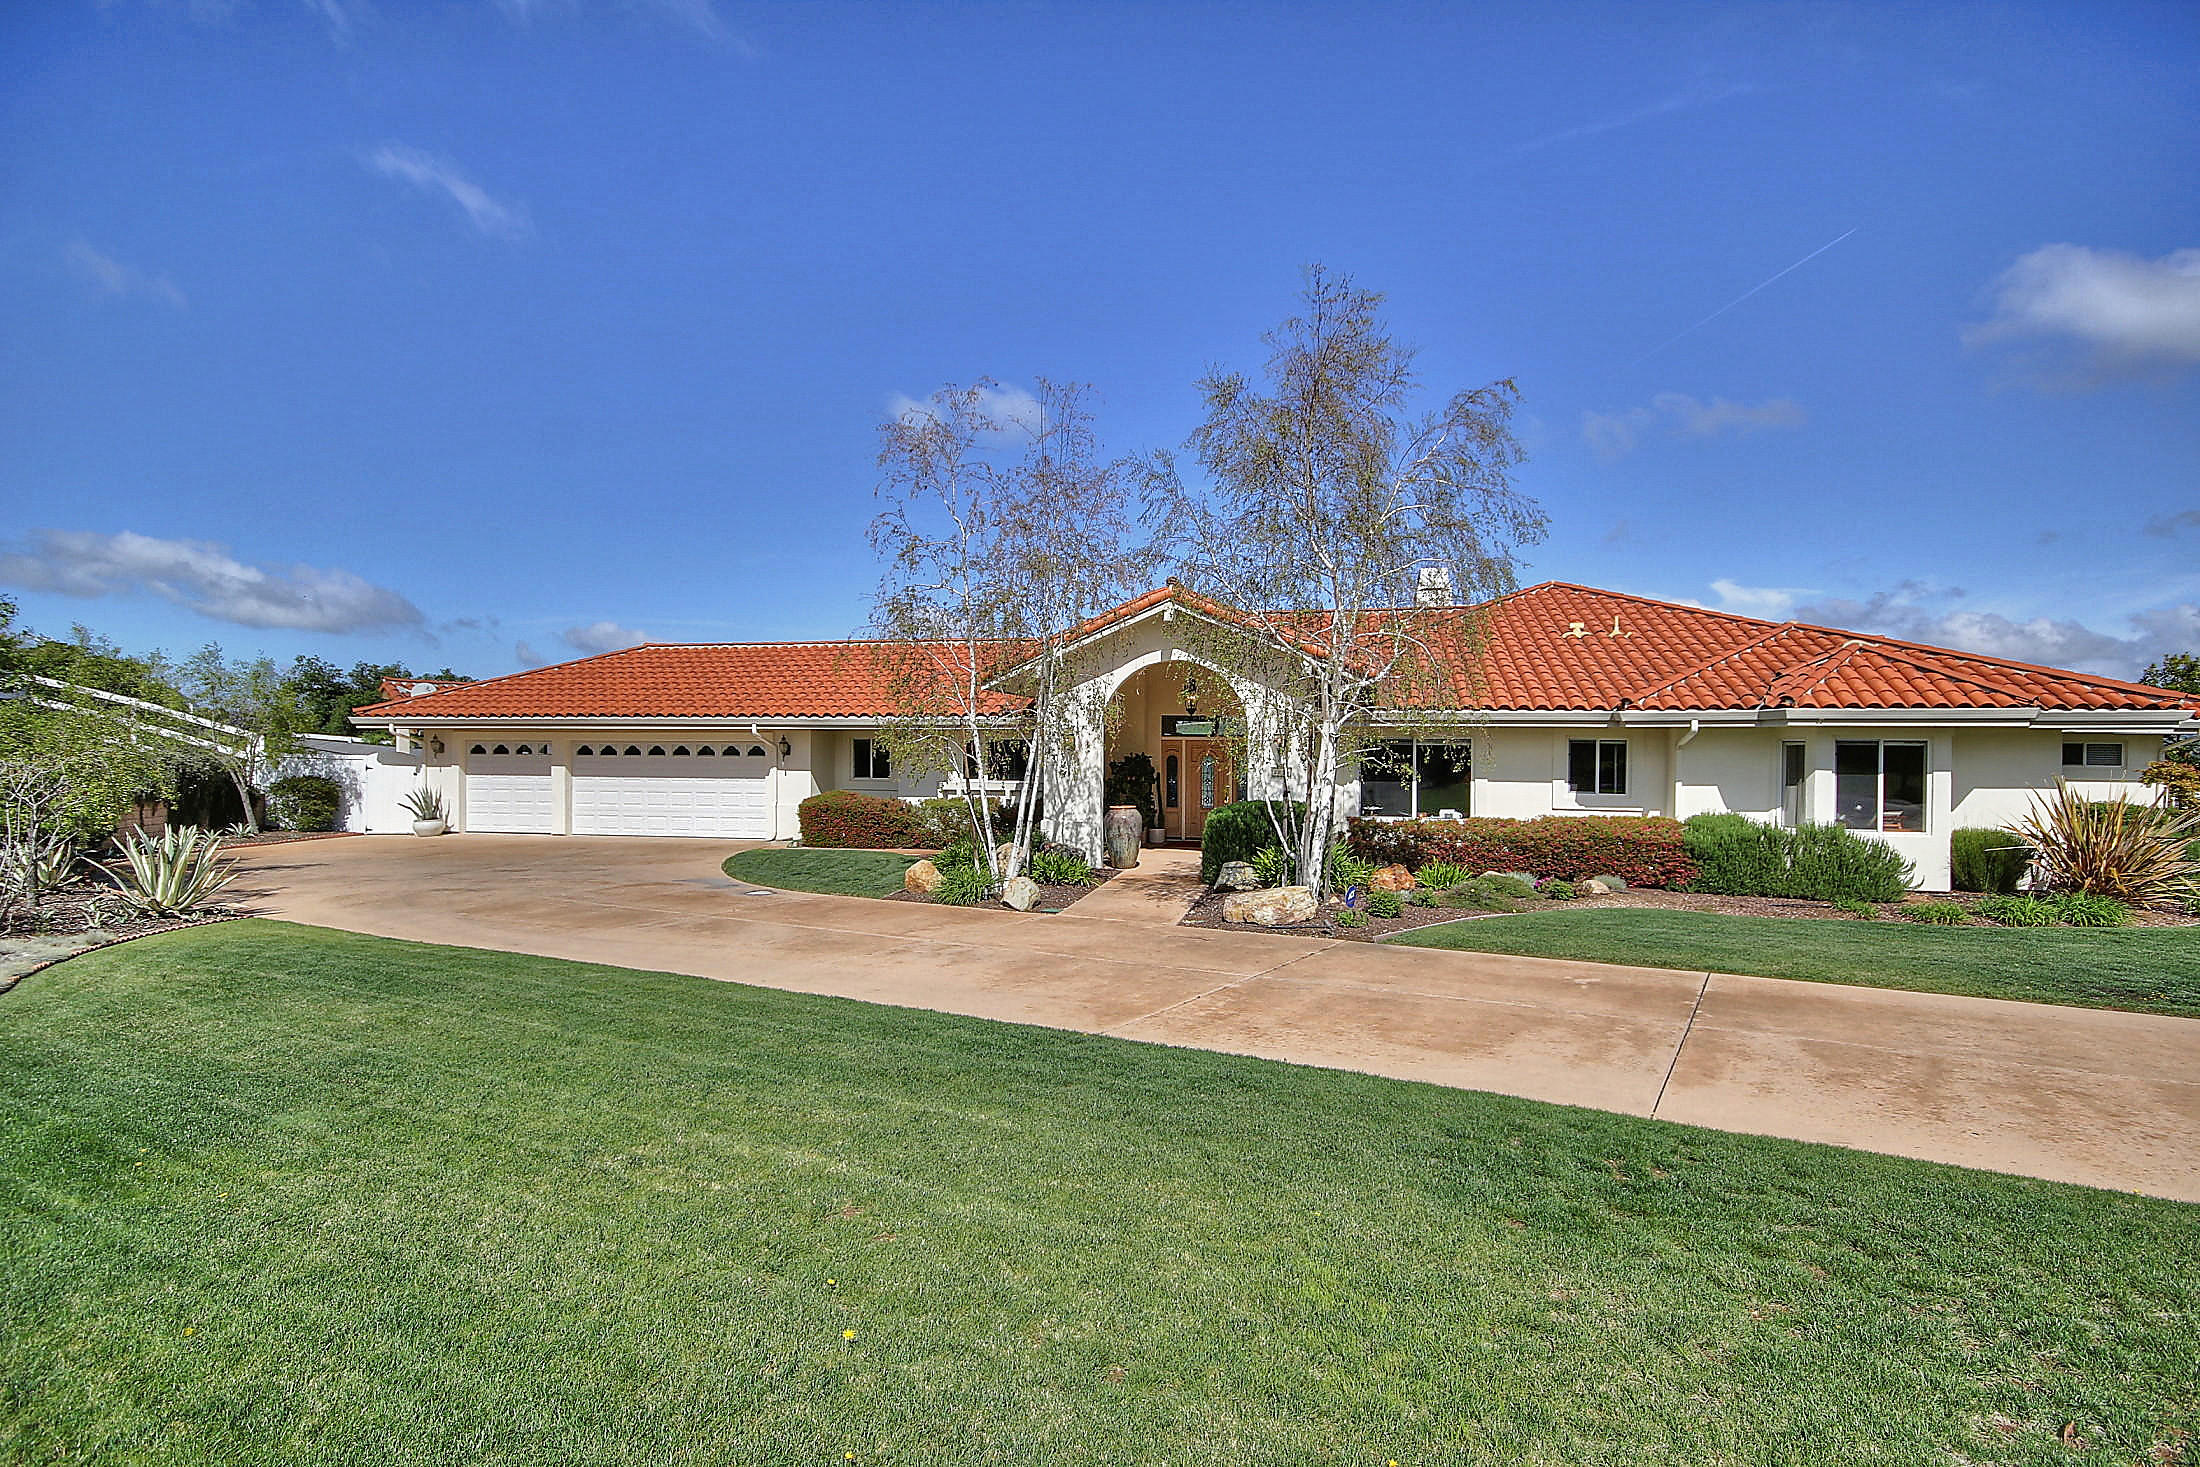 Property photo for 2231 Hill Haven Rd Solvang, California 93463 - 16-3416